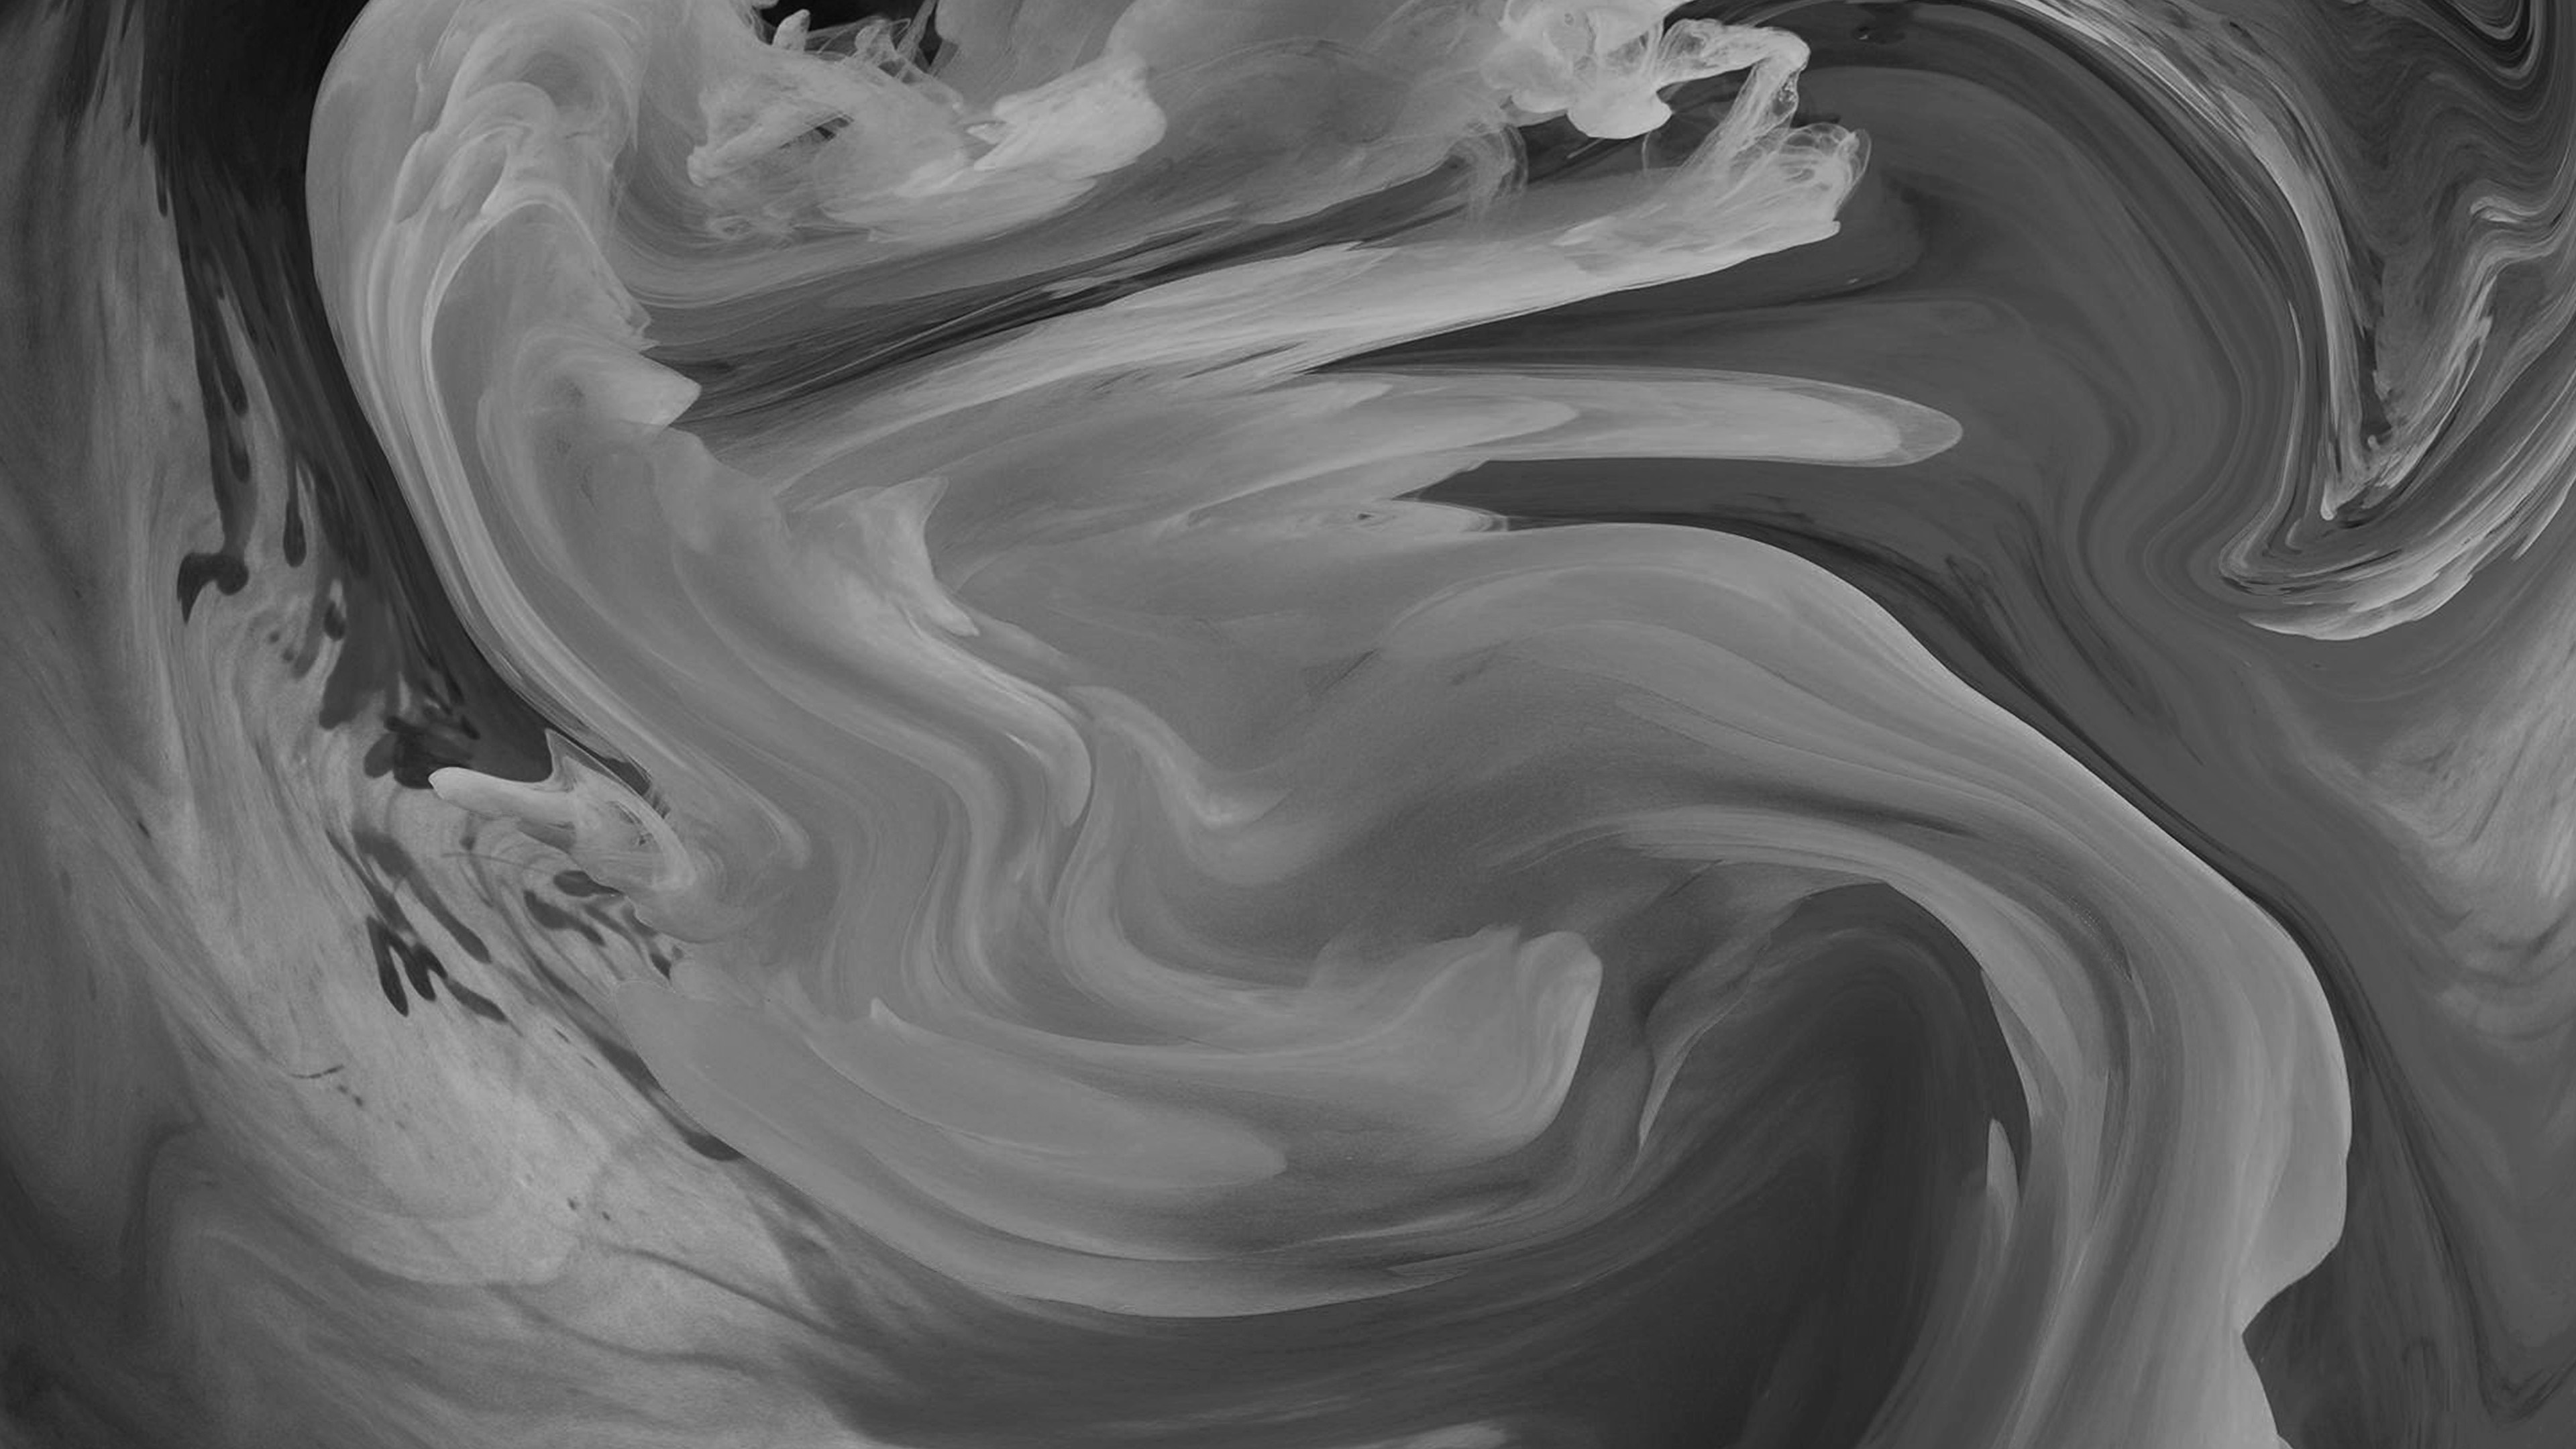 vl09-hurricane-swirl-abstract-art-paint-dark-bw-pattern ...